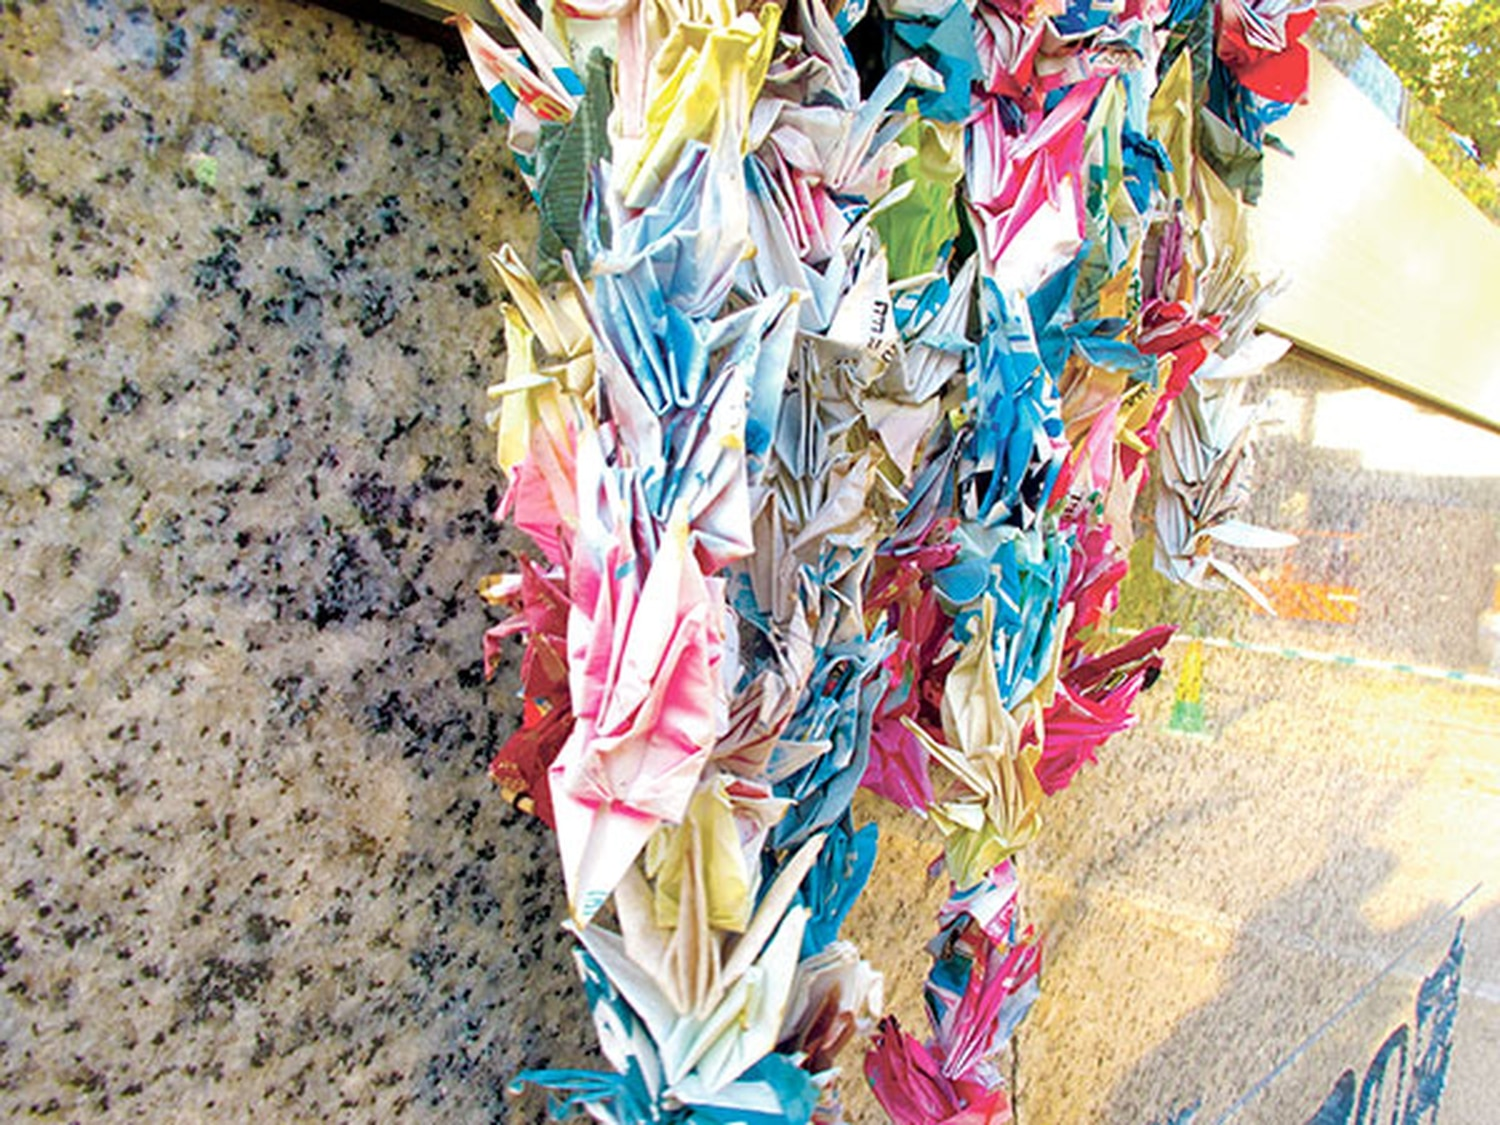 Thousands of cranes hang in Hiroshima Memorial Peace Park this spring.